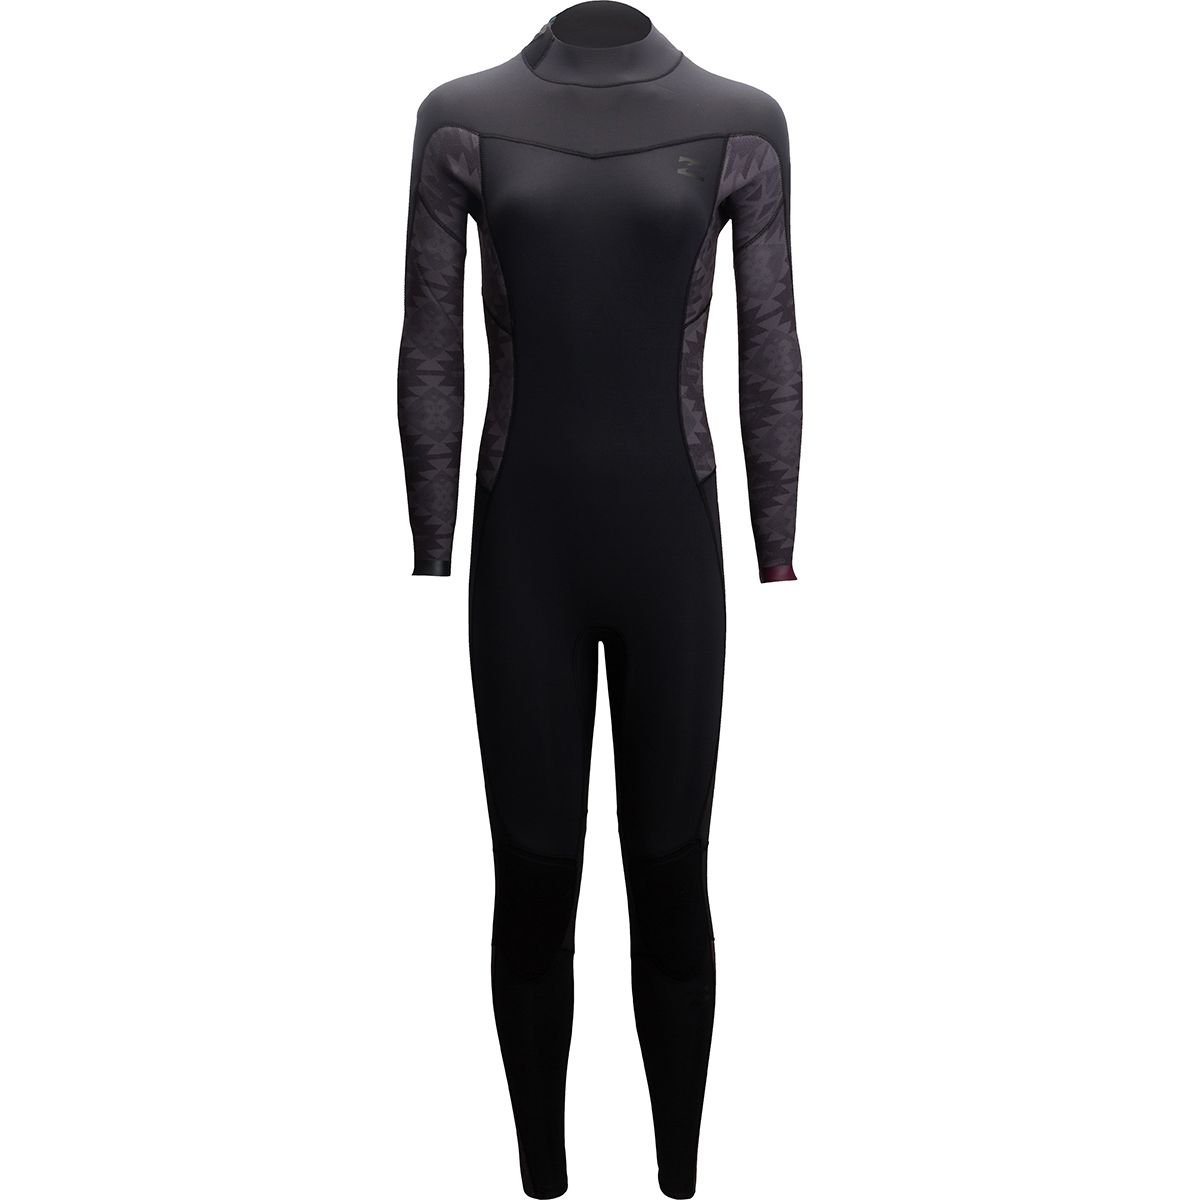 Billabong 3 / 2 Synergy back-zip Full Wetsuit – Women 's B01J774SMC 6|ブラック ブラック 6